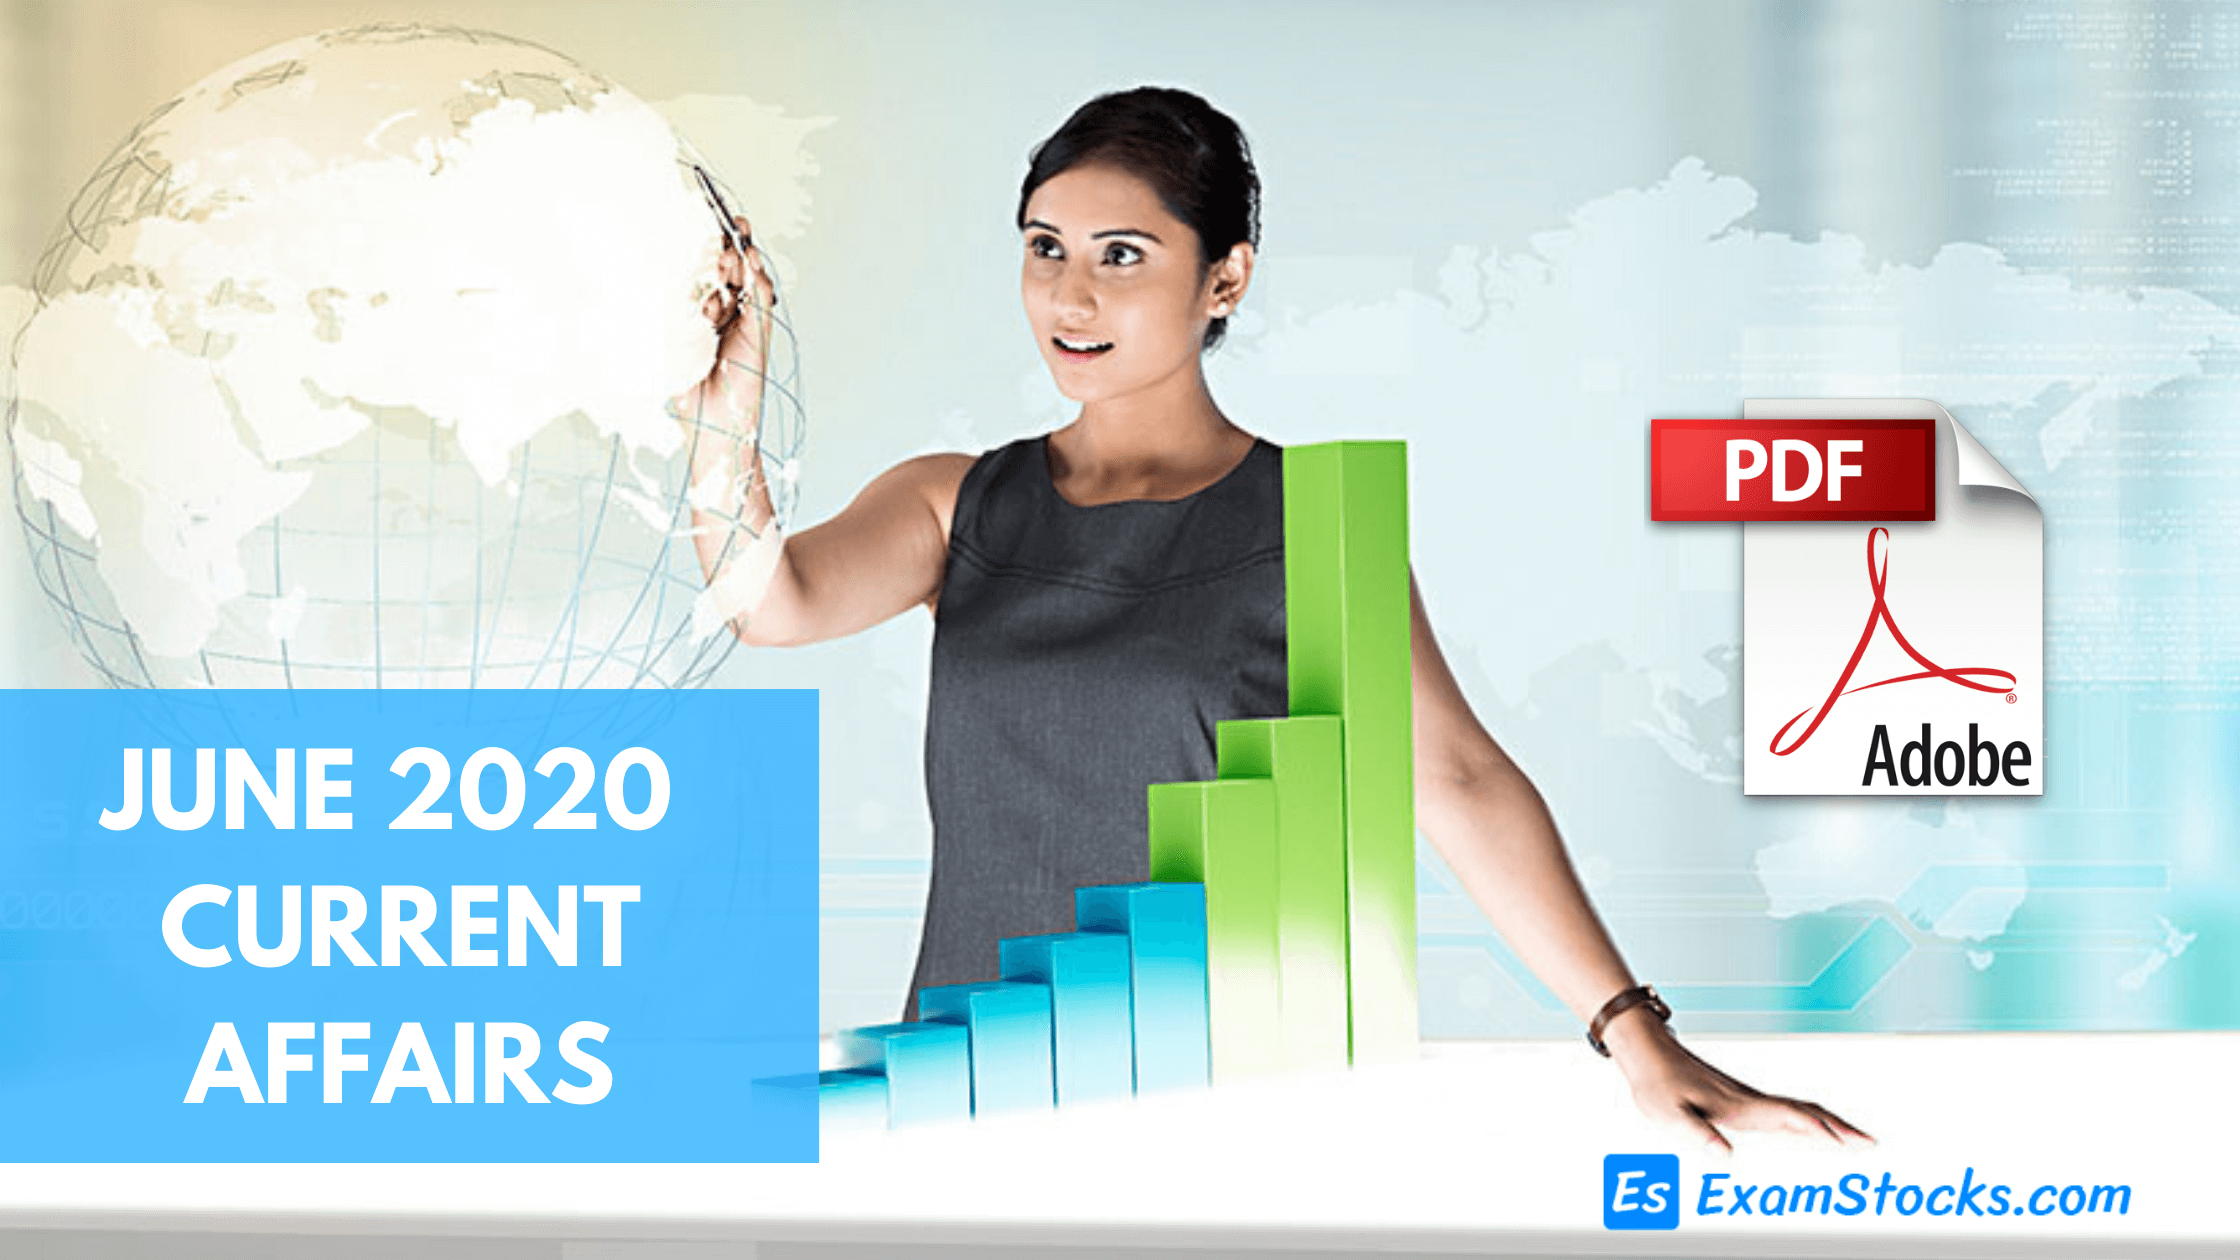 300+ Best June 2020 Current Affairs PDF For All Exams